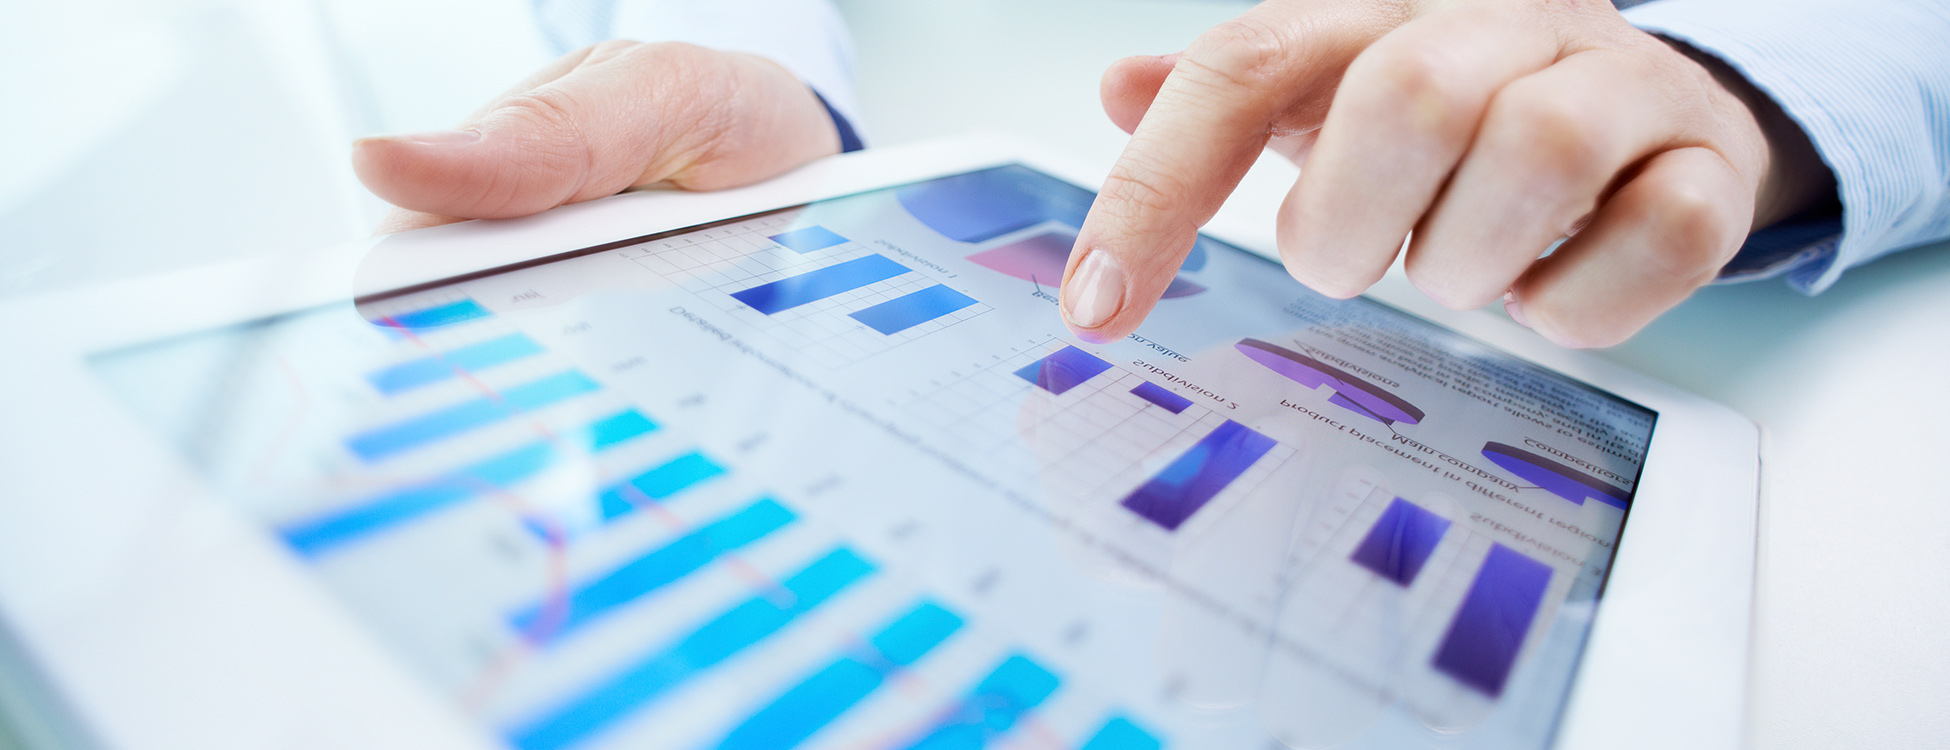 Business intelligence reports on iPad tablet